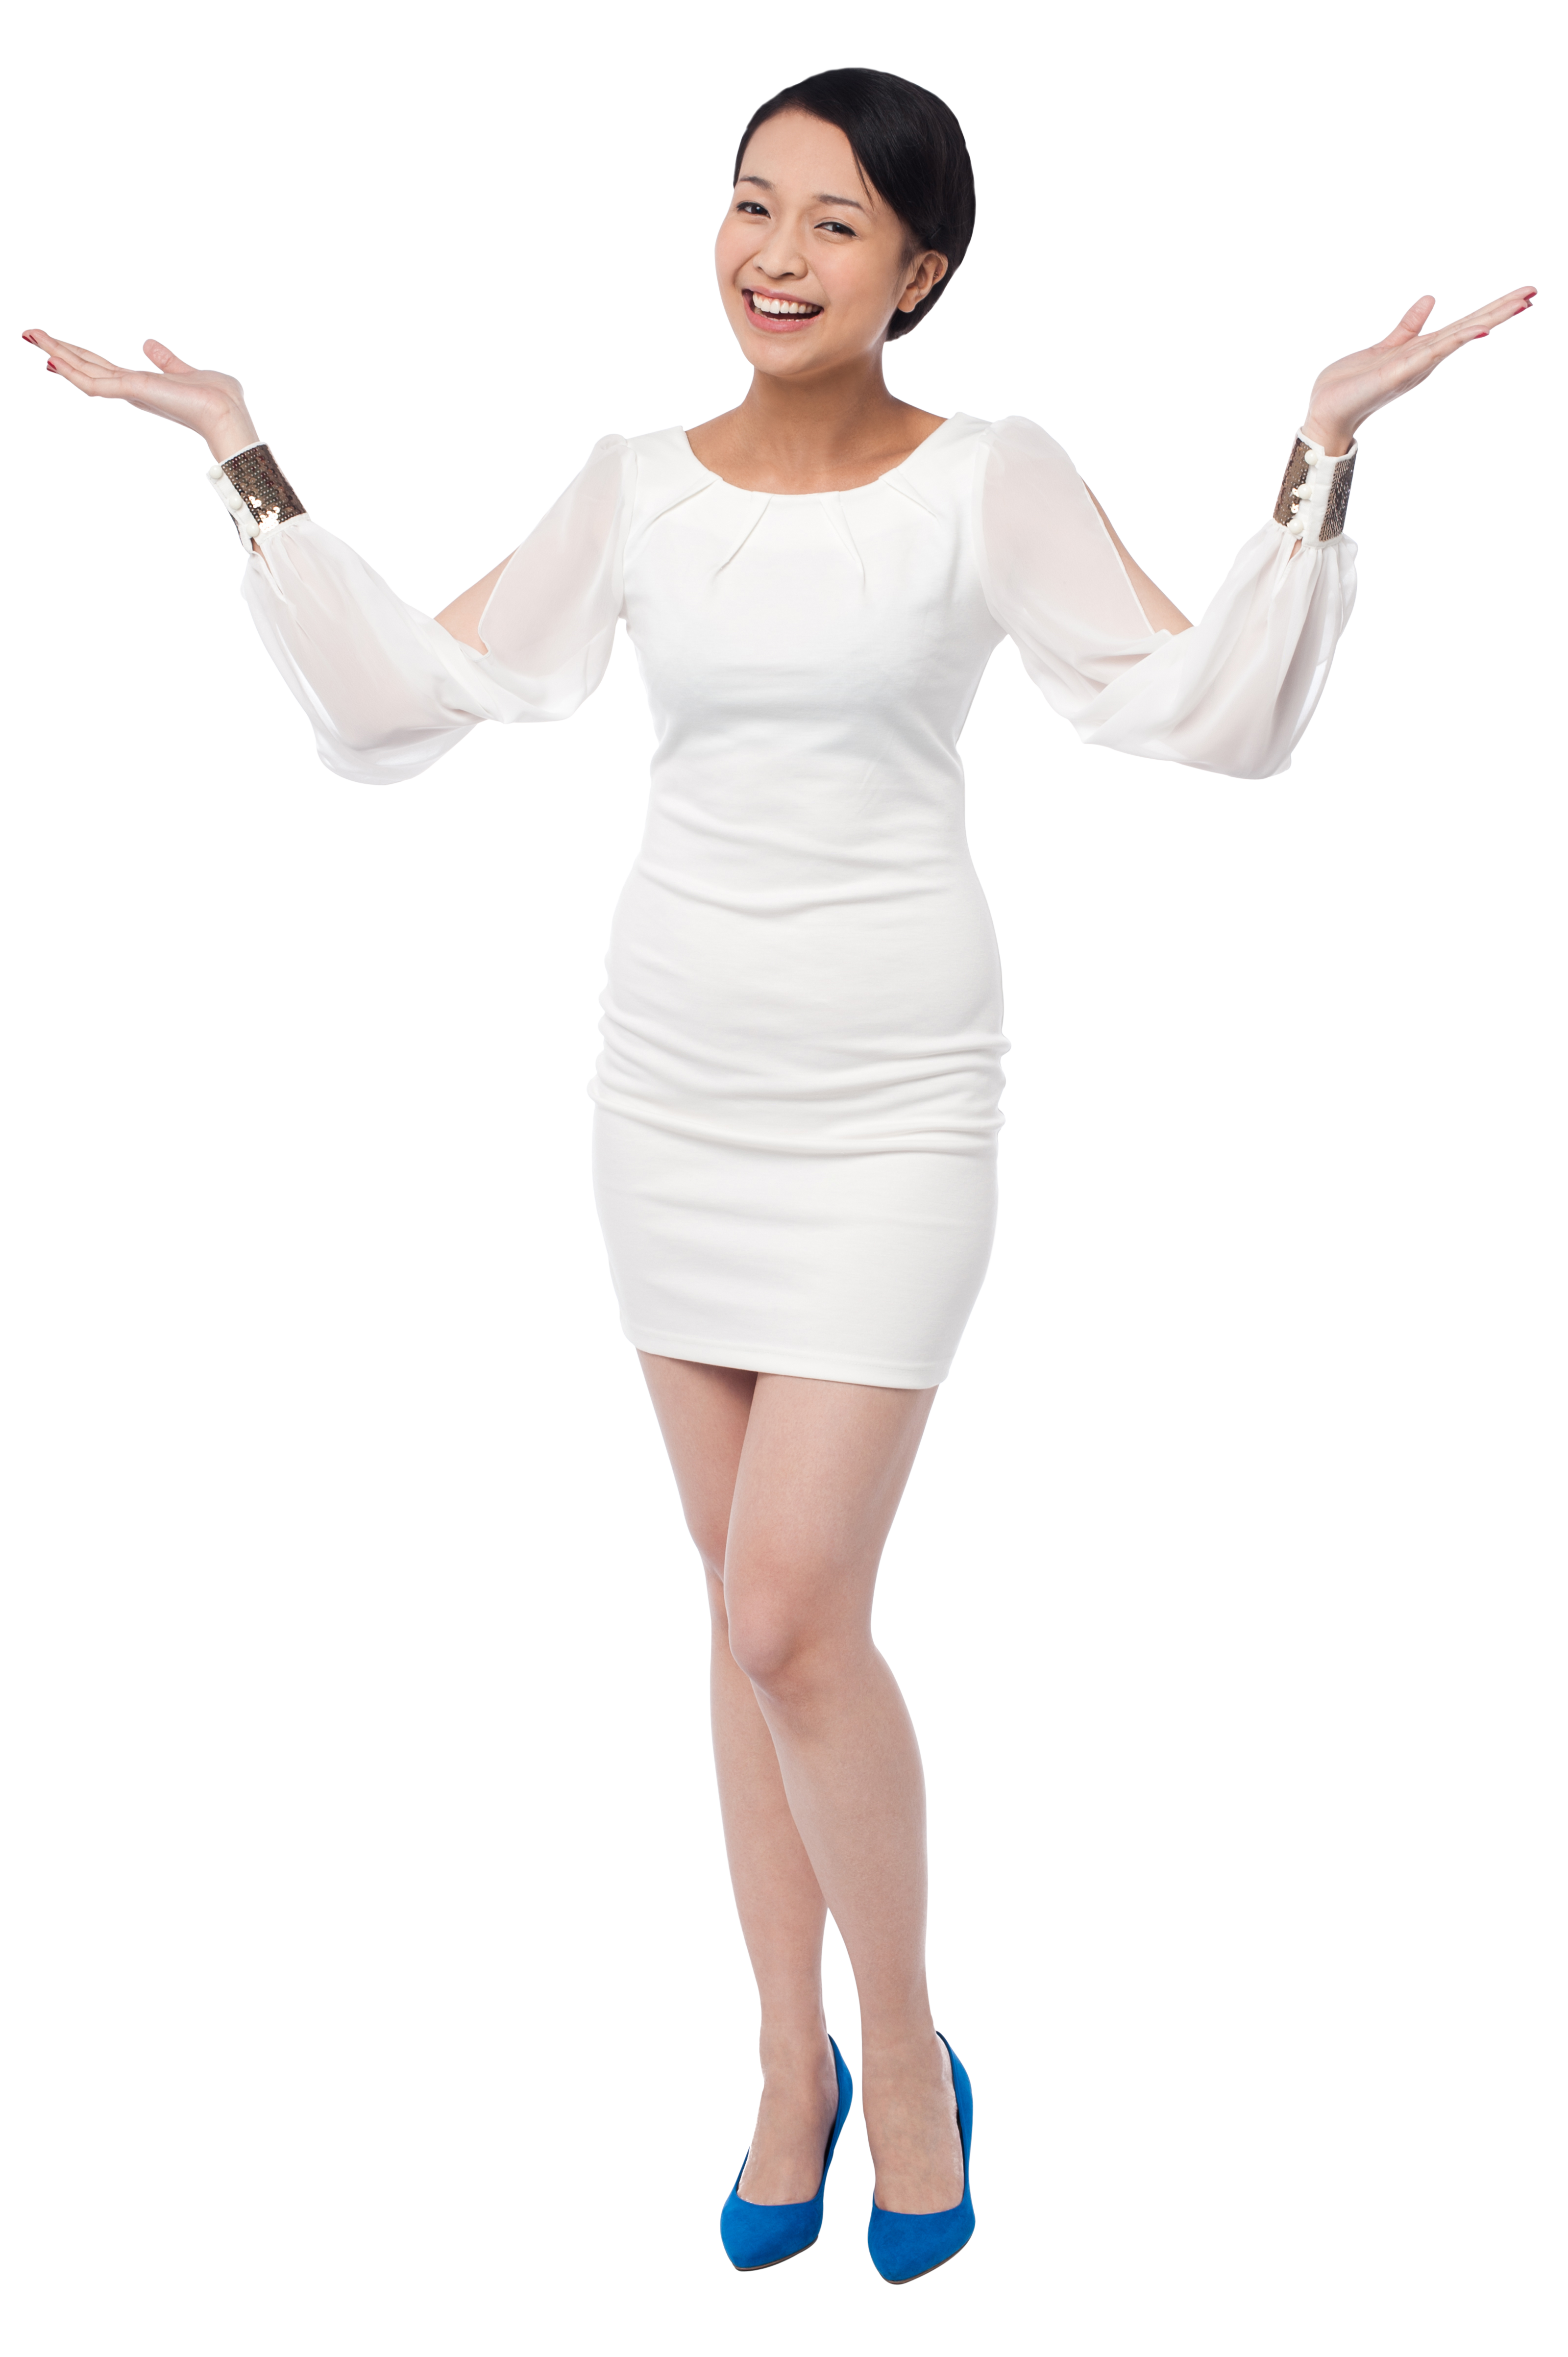 Free png images for commercial use. Women pointing both sides